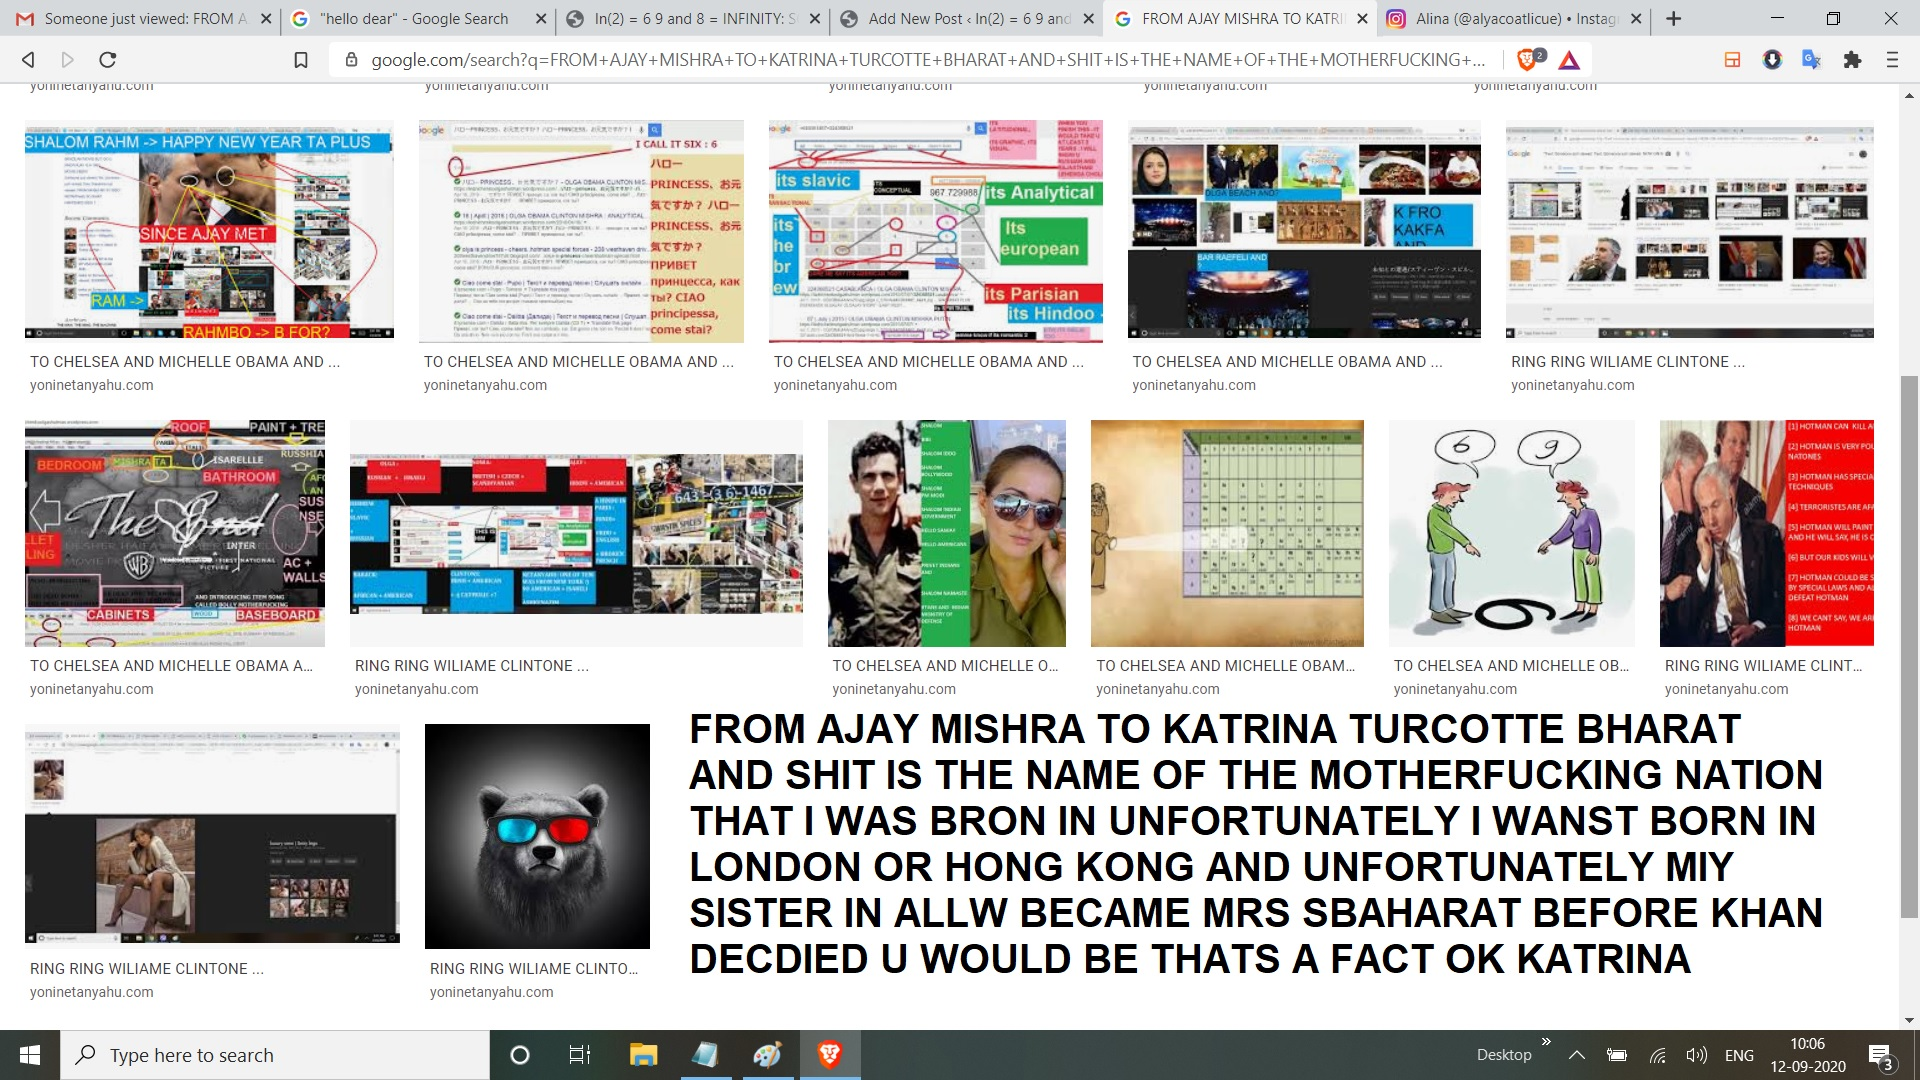 FROM AJAY MISHRA TO KATRINA TURCOTTE BHARAT AND SHIT IS THE NAME OF THE MOTHERFUCKING NATION THAT I WAS BRON IN UNFORTUNATELY I WANST BORN IN LONDON OR HONG KONG AND UNFORTUNATELY MIY SISTER IN ALLW BECAME MRS SBAHARAT BEFORE KHAN DECDIED U WOULD BE THATS A FACT OK KATRINA